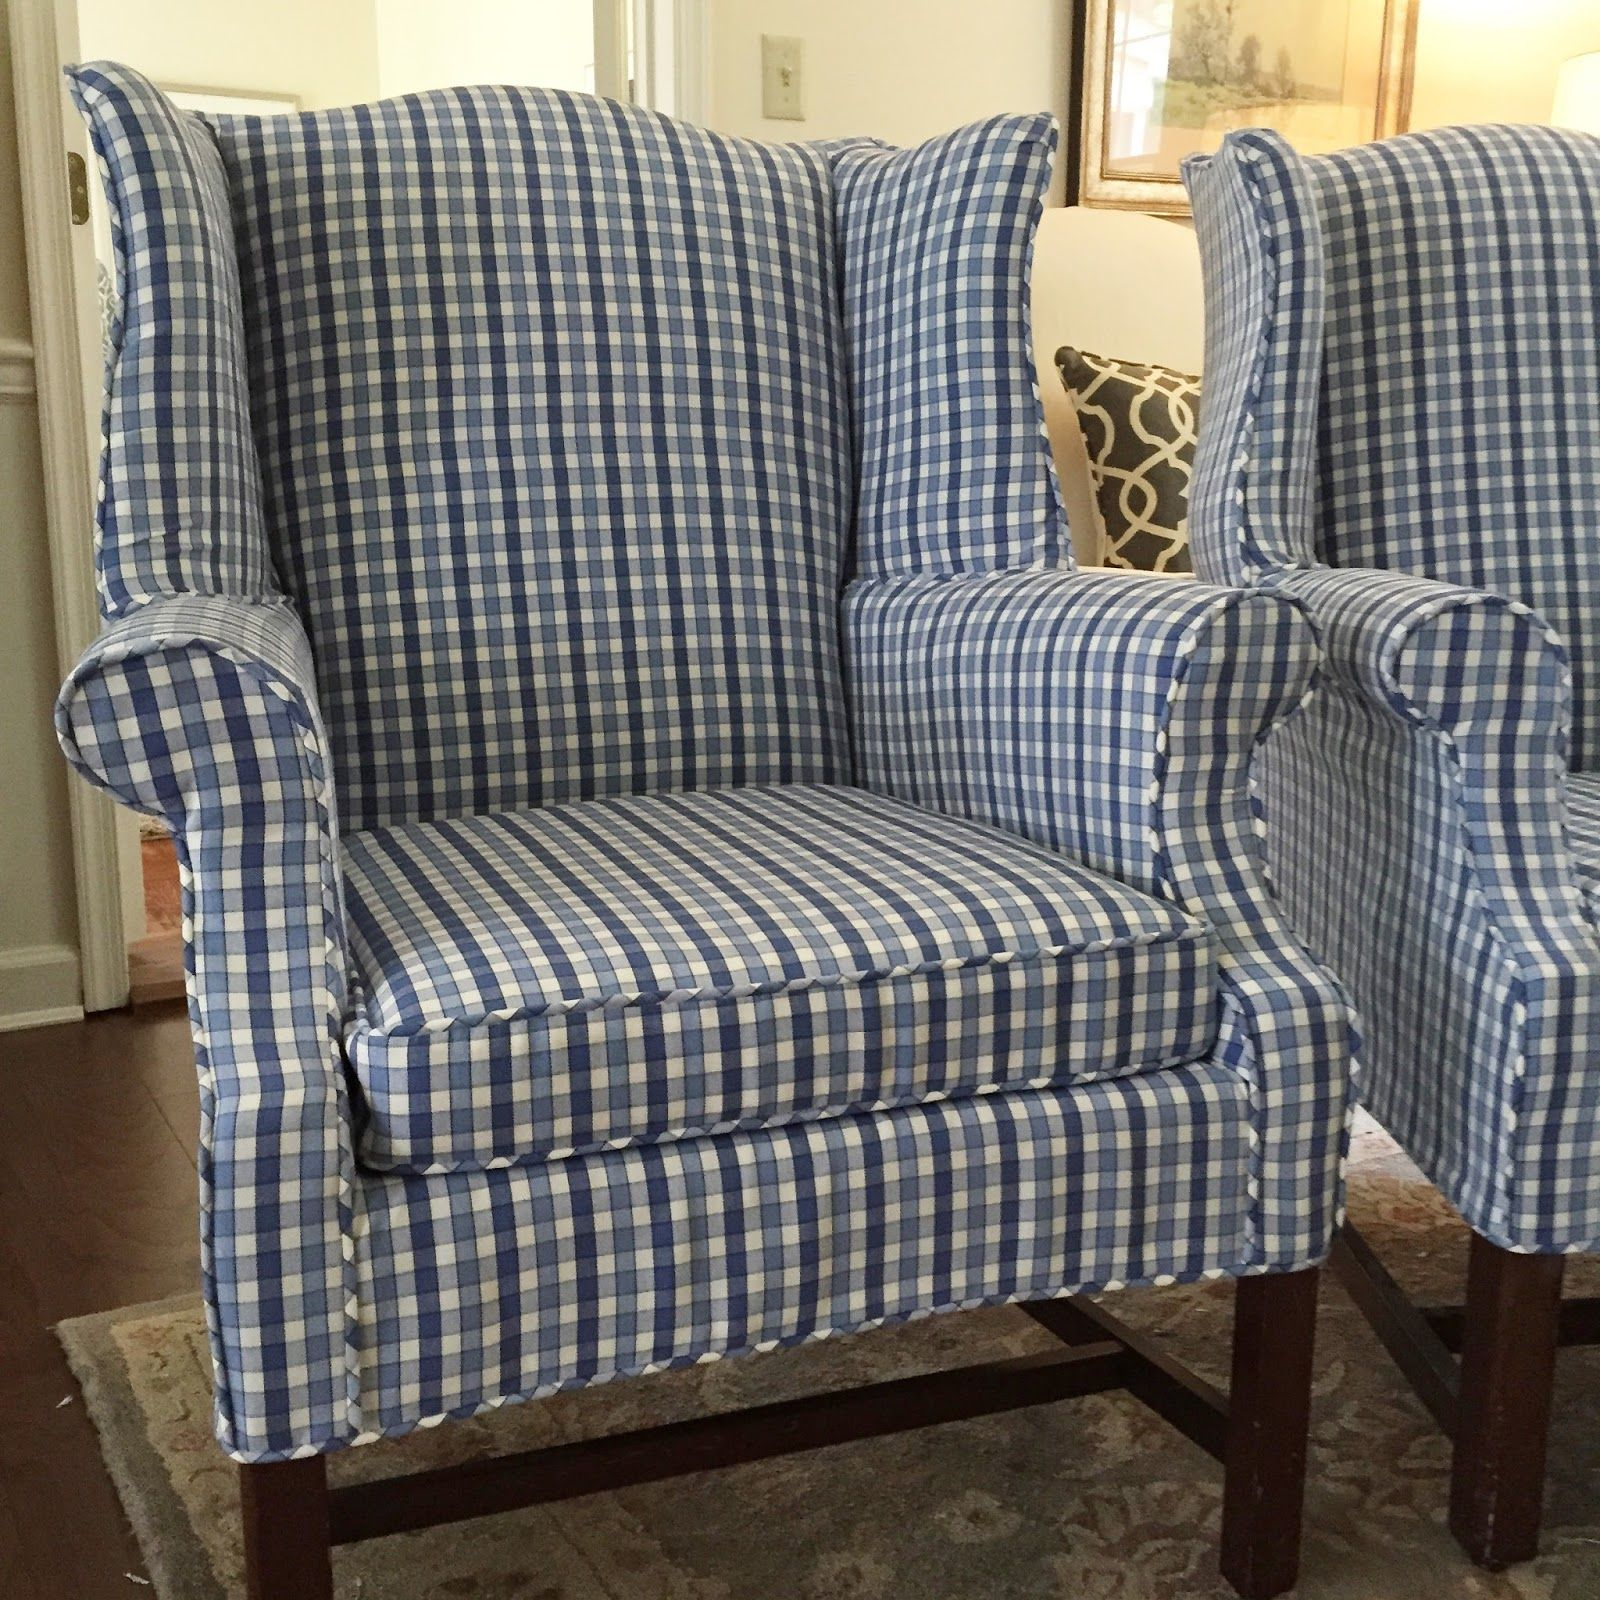 Checked Wing Chairs In Shades Of Blue Slipcovers For Chairs